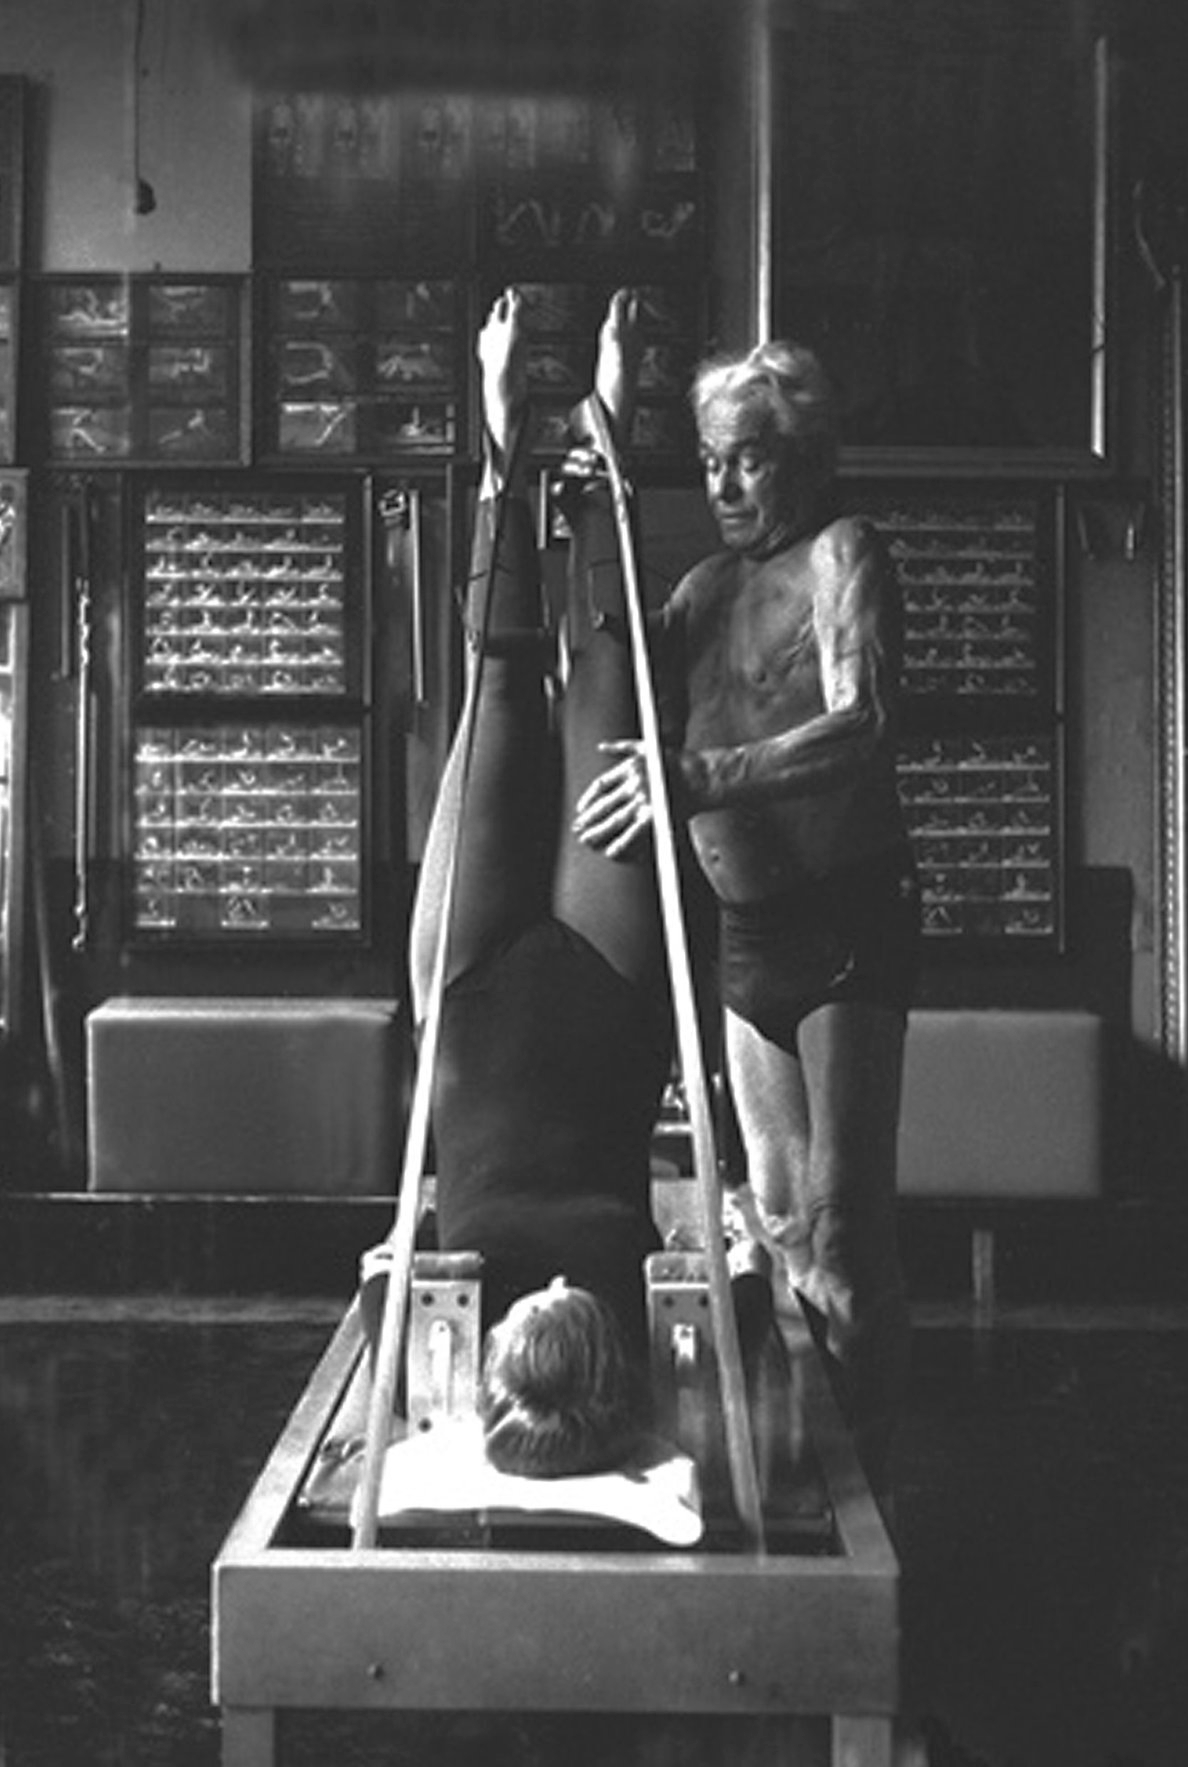 Joseph pilates - Joseph Pilates was born in Mönchengladbach, near Düsseldorf, Germany, in 1883. His father was a prize-winning gymnast, and his mother worked as a naturopath. Pilates was a frail sickly child, suffering from asthma, rickets and rheumatic fever. His drive and determination to overcome these ailments led him to become a competent gymnast, diver and skier. He also studied body-building, yoga and kung fu.In 1912 Pilates moved to England, earning a living as a professional boxer, circus performer, and self-defence instructor for Scotland Yard. However, during the First World War, he was interred by the British authorities, with other German nationals, and taught them wrestling and self-defence. He developed his technique of physical fitness further, during the latter part of the War, when he served as an orderly in a hospital on the Isle of Man, working with patients unable to walk. Joseph developed his concept of an integrated, comprehensive system of physical exercise, which he himself called 'Contrology'. He attached bed springs to the hospital beds to help support the patients' limbs, leading to the development of his equipment known as the 'Cadillac'. Much of his equipment, although slightly adapted, is still in use today in many Pilates Studios.Pilates emigrated to the United States in the early 1920s, opening a 'body-conditioning studio' with his wife Clara in New York in 1926. The studio featured much of the apparatus designed to enhance his rehabilitation work. It soon became very popular, particularly with the dance community, as it offered a chance to improve technique or recover from injury. Word spread quickly and many celebrities of the day visited his studio. These included dance legends such as Ruth St. Denis, Ted Shawn, Jerome Robbins, George Balanchine and Martha Graham, as well as the actor Jose Ferrer and the author Christopher Isherwood.In 1932 Pilates published a booklet called 'Your Health' and followed this with another called 'Ret